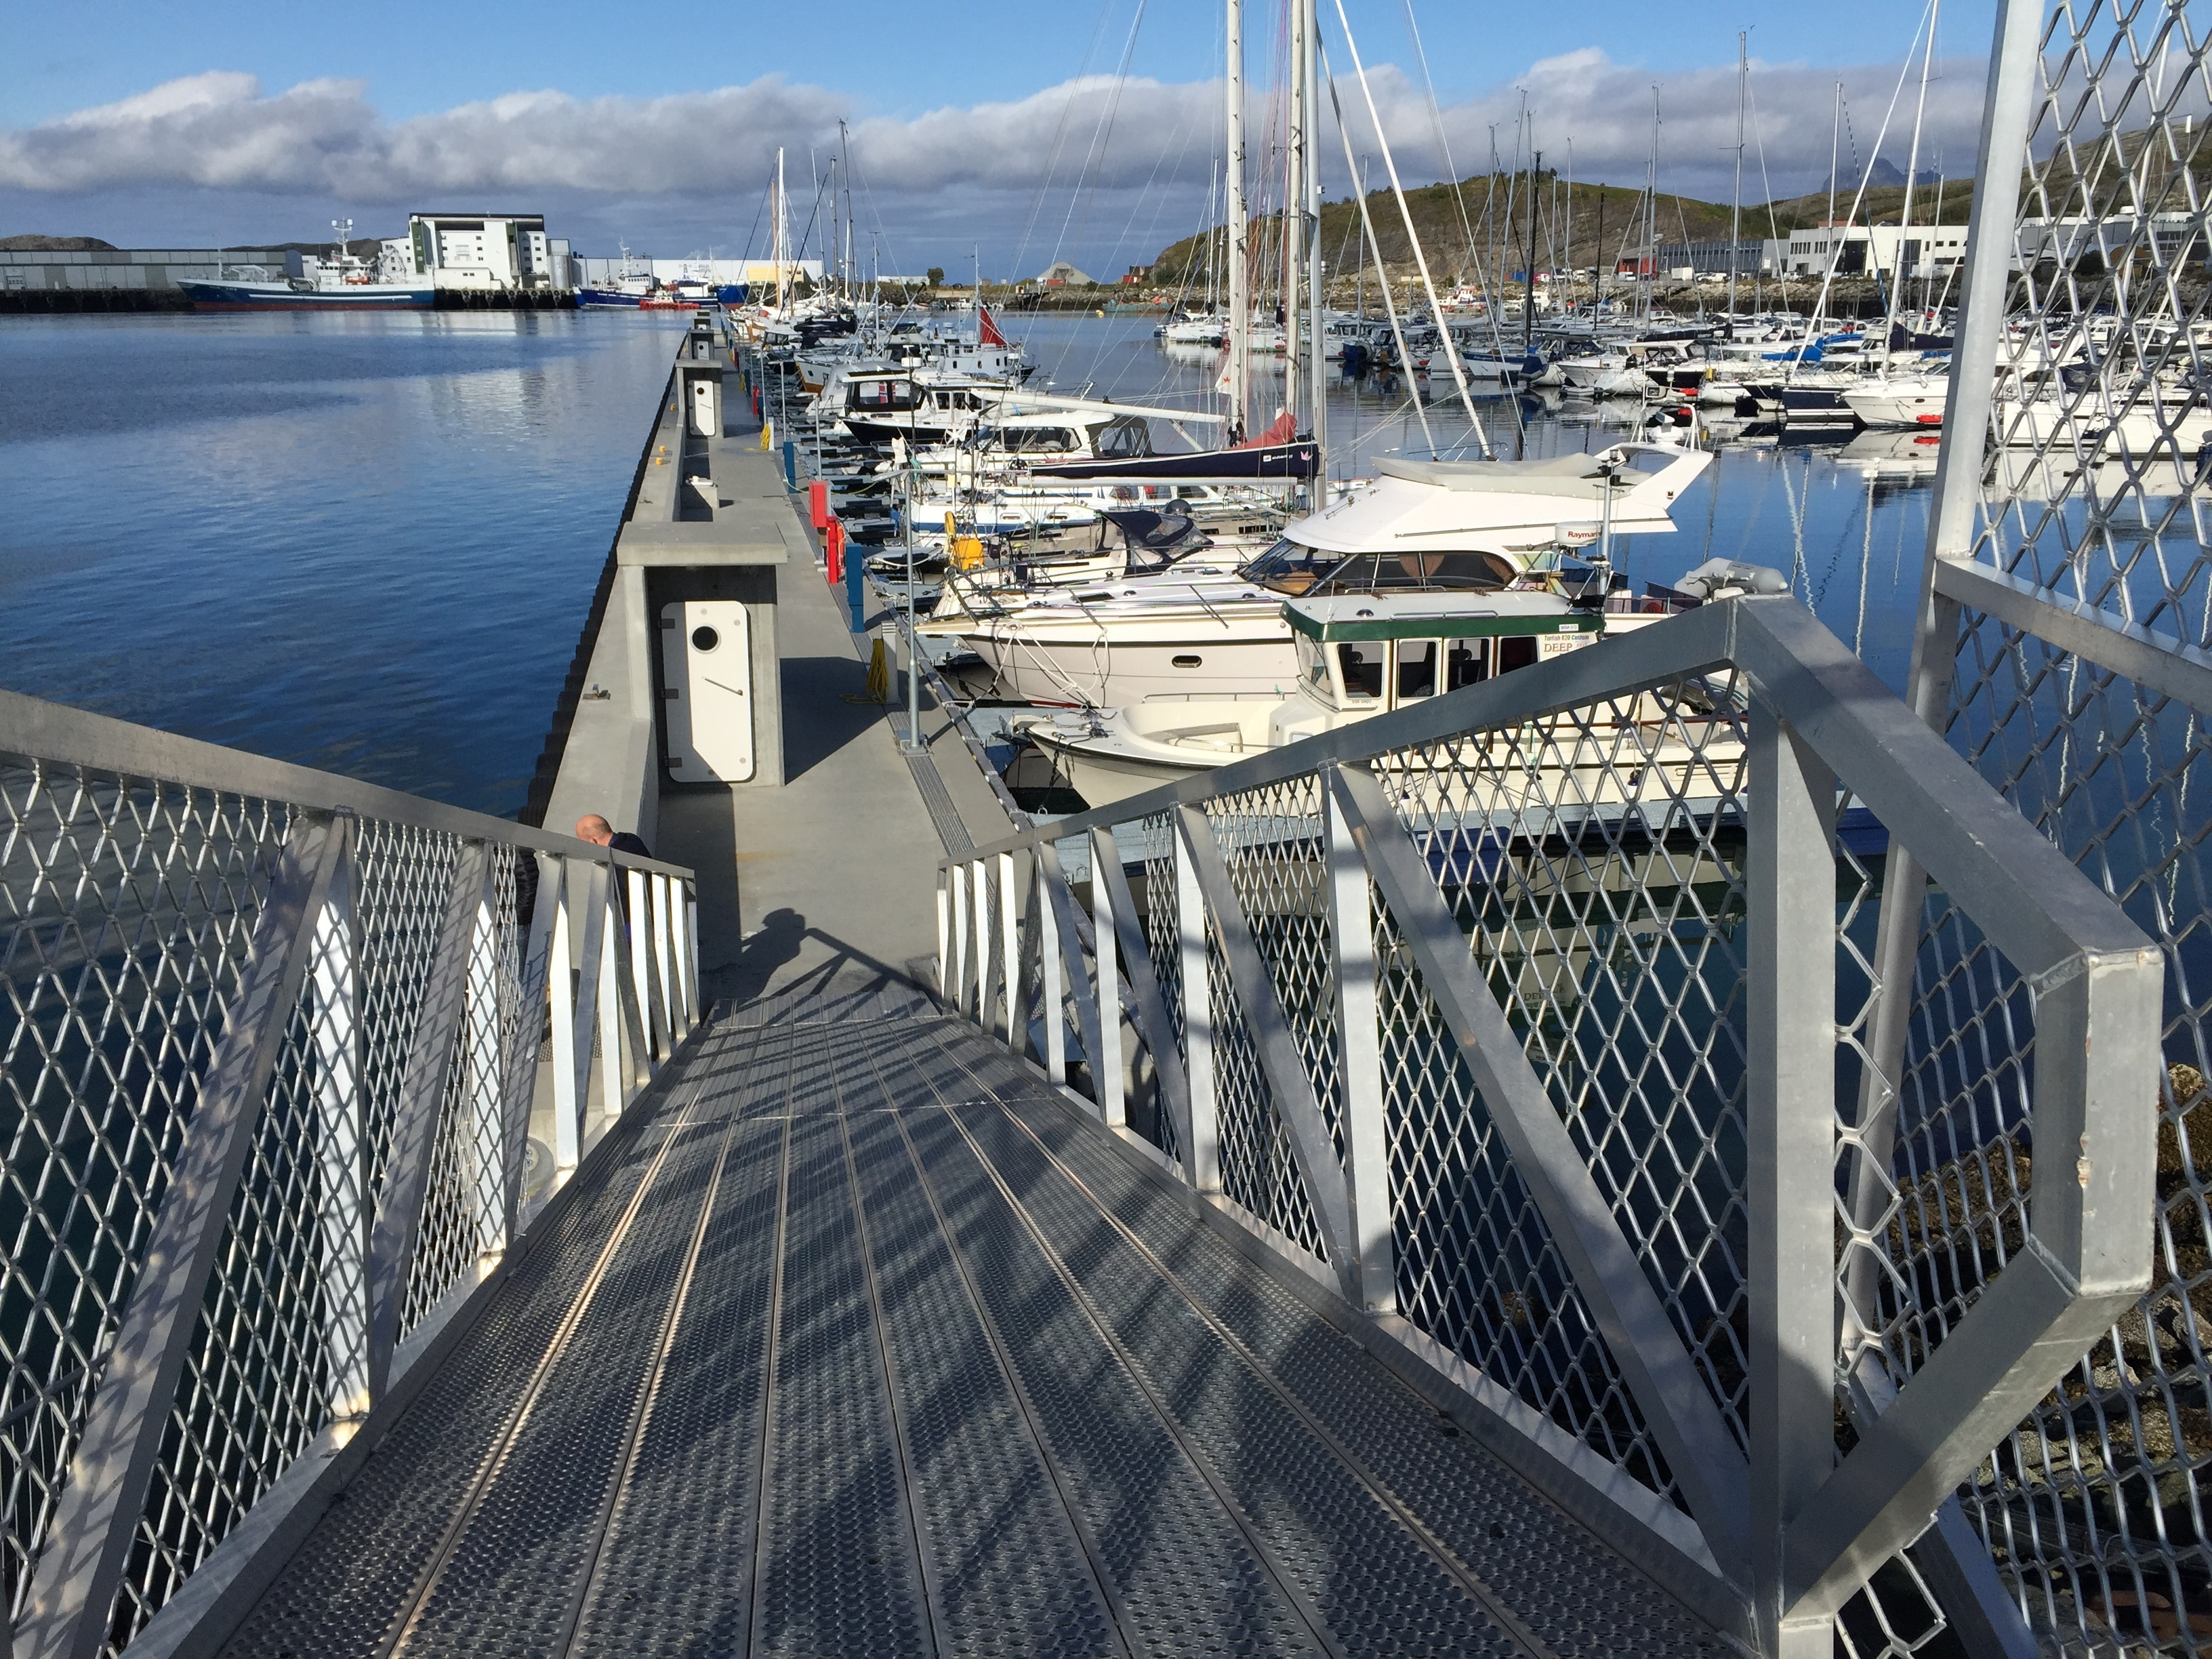 https://marinasolutions.no/uploads/RØnvikfjæra-Bodø-Marina-Solutions.JPG